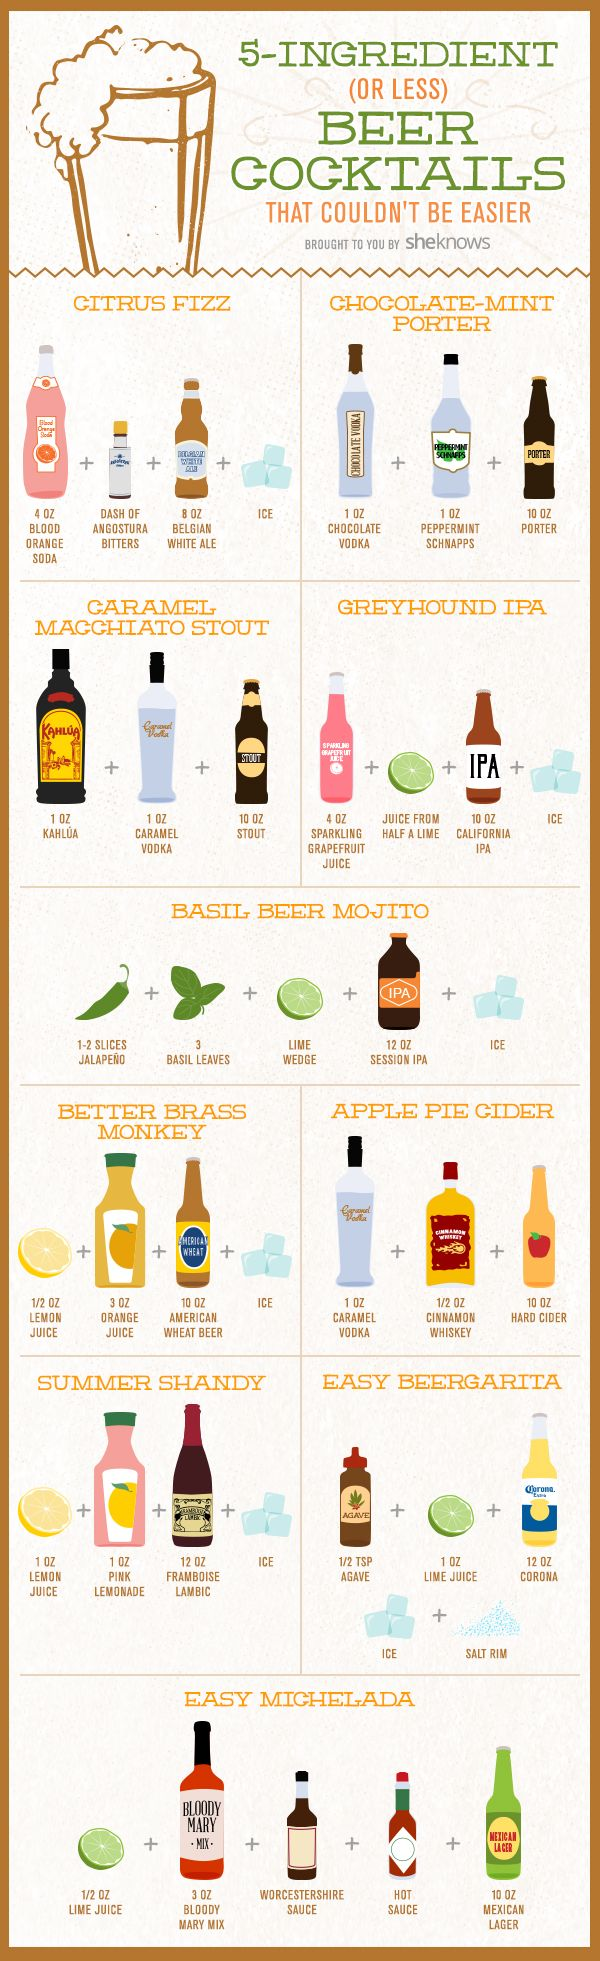 10 Super-easy beer cocktails with 5 ingredients or less - Custom illustrations…